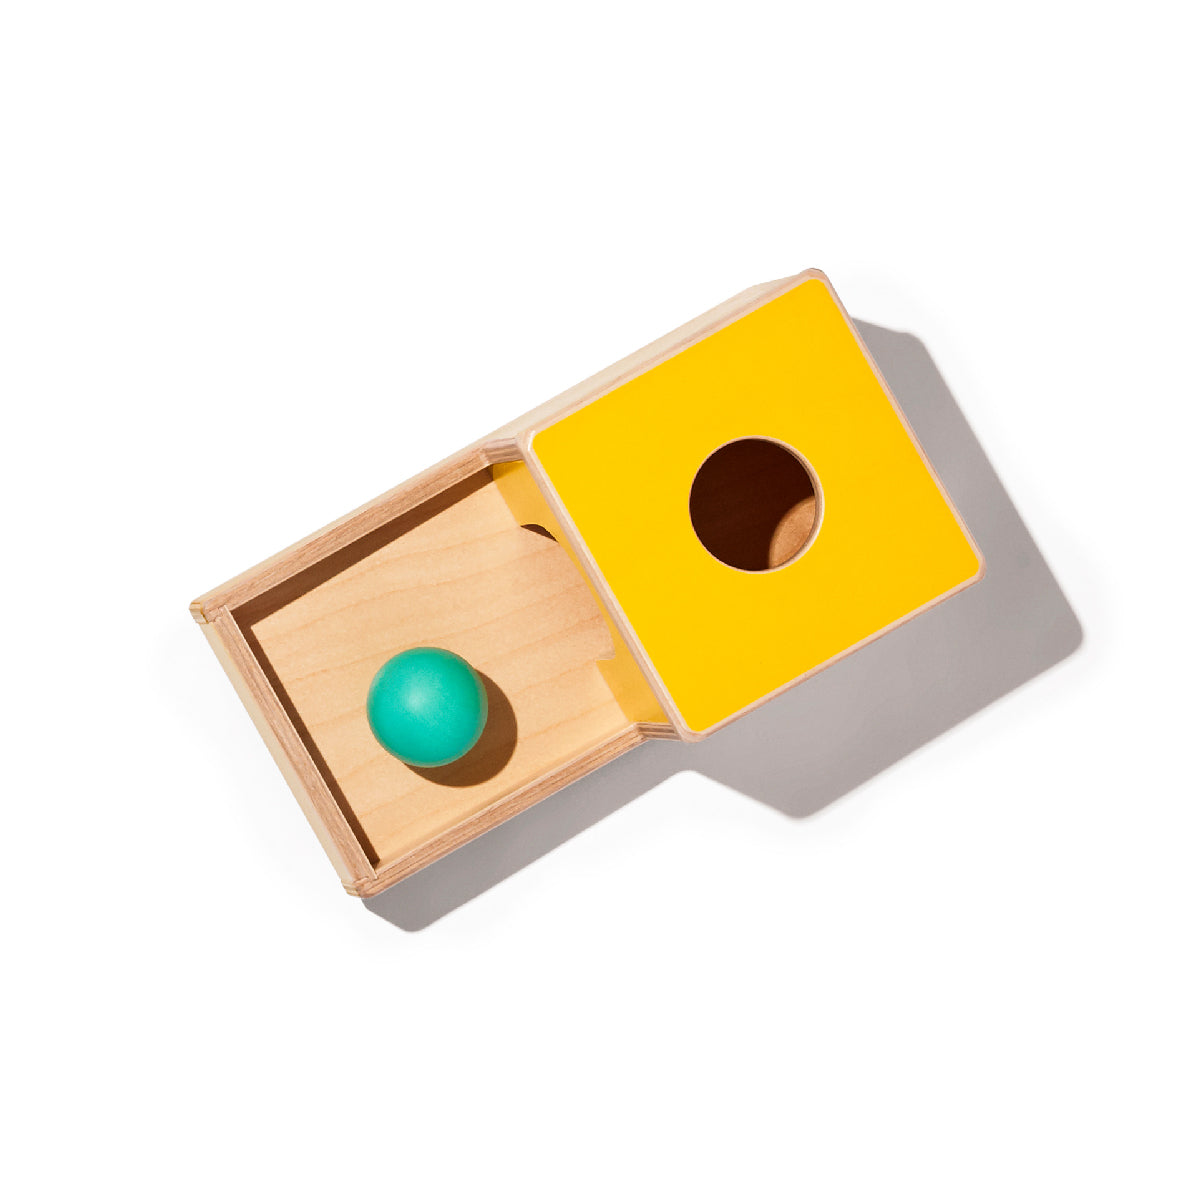 box with a hole for a ball and drawer